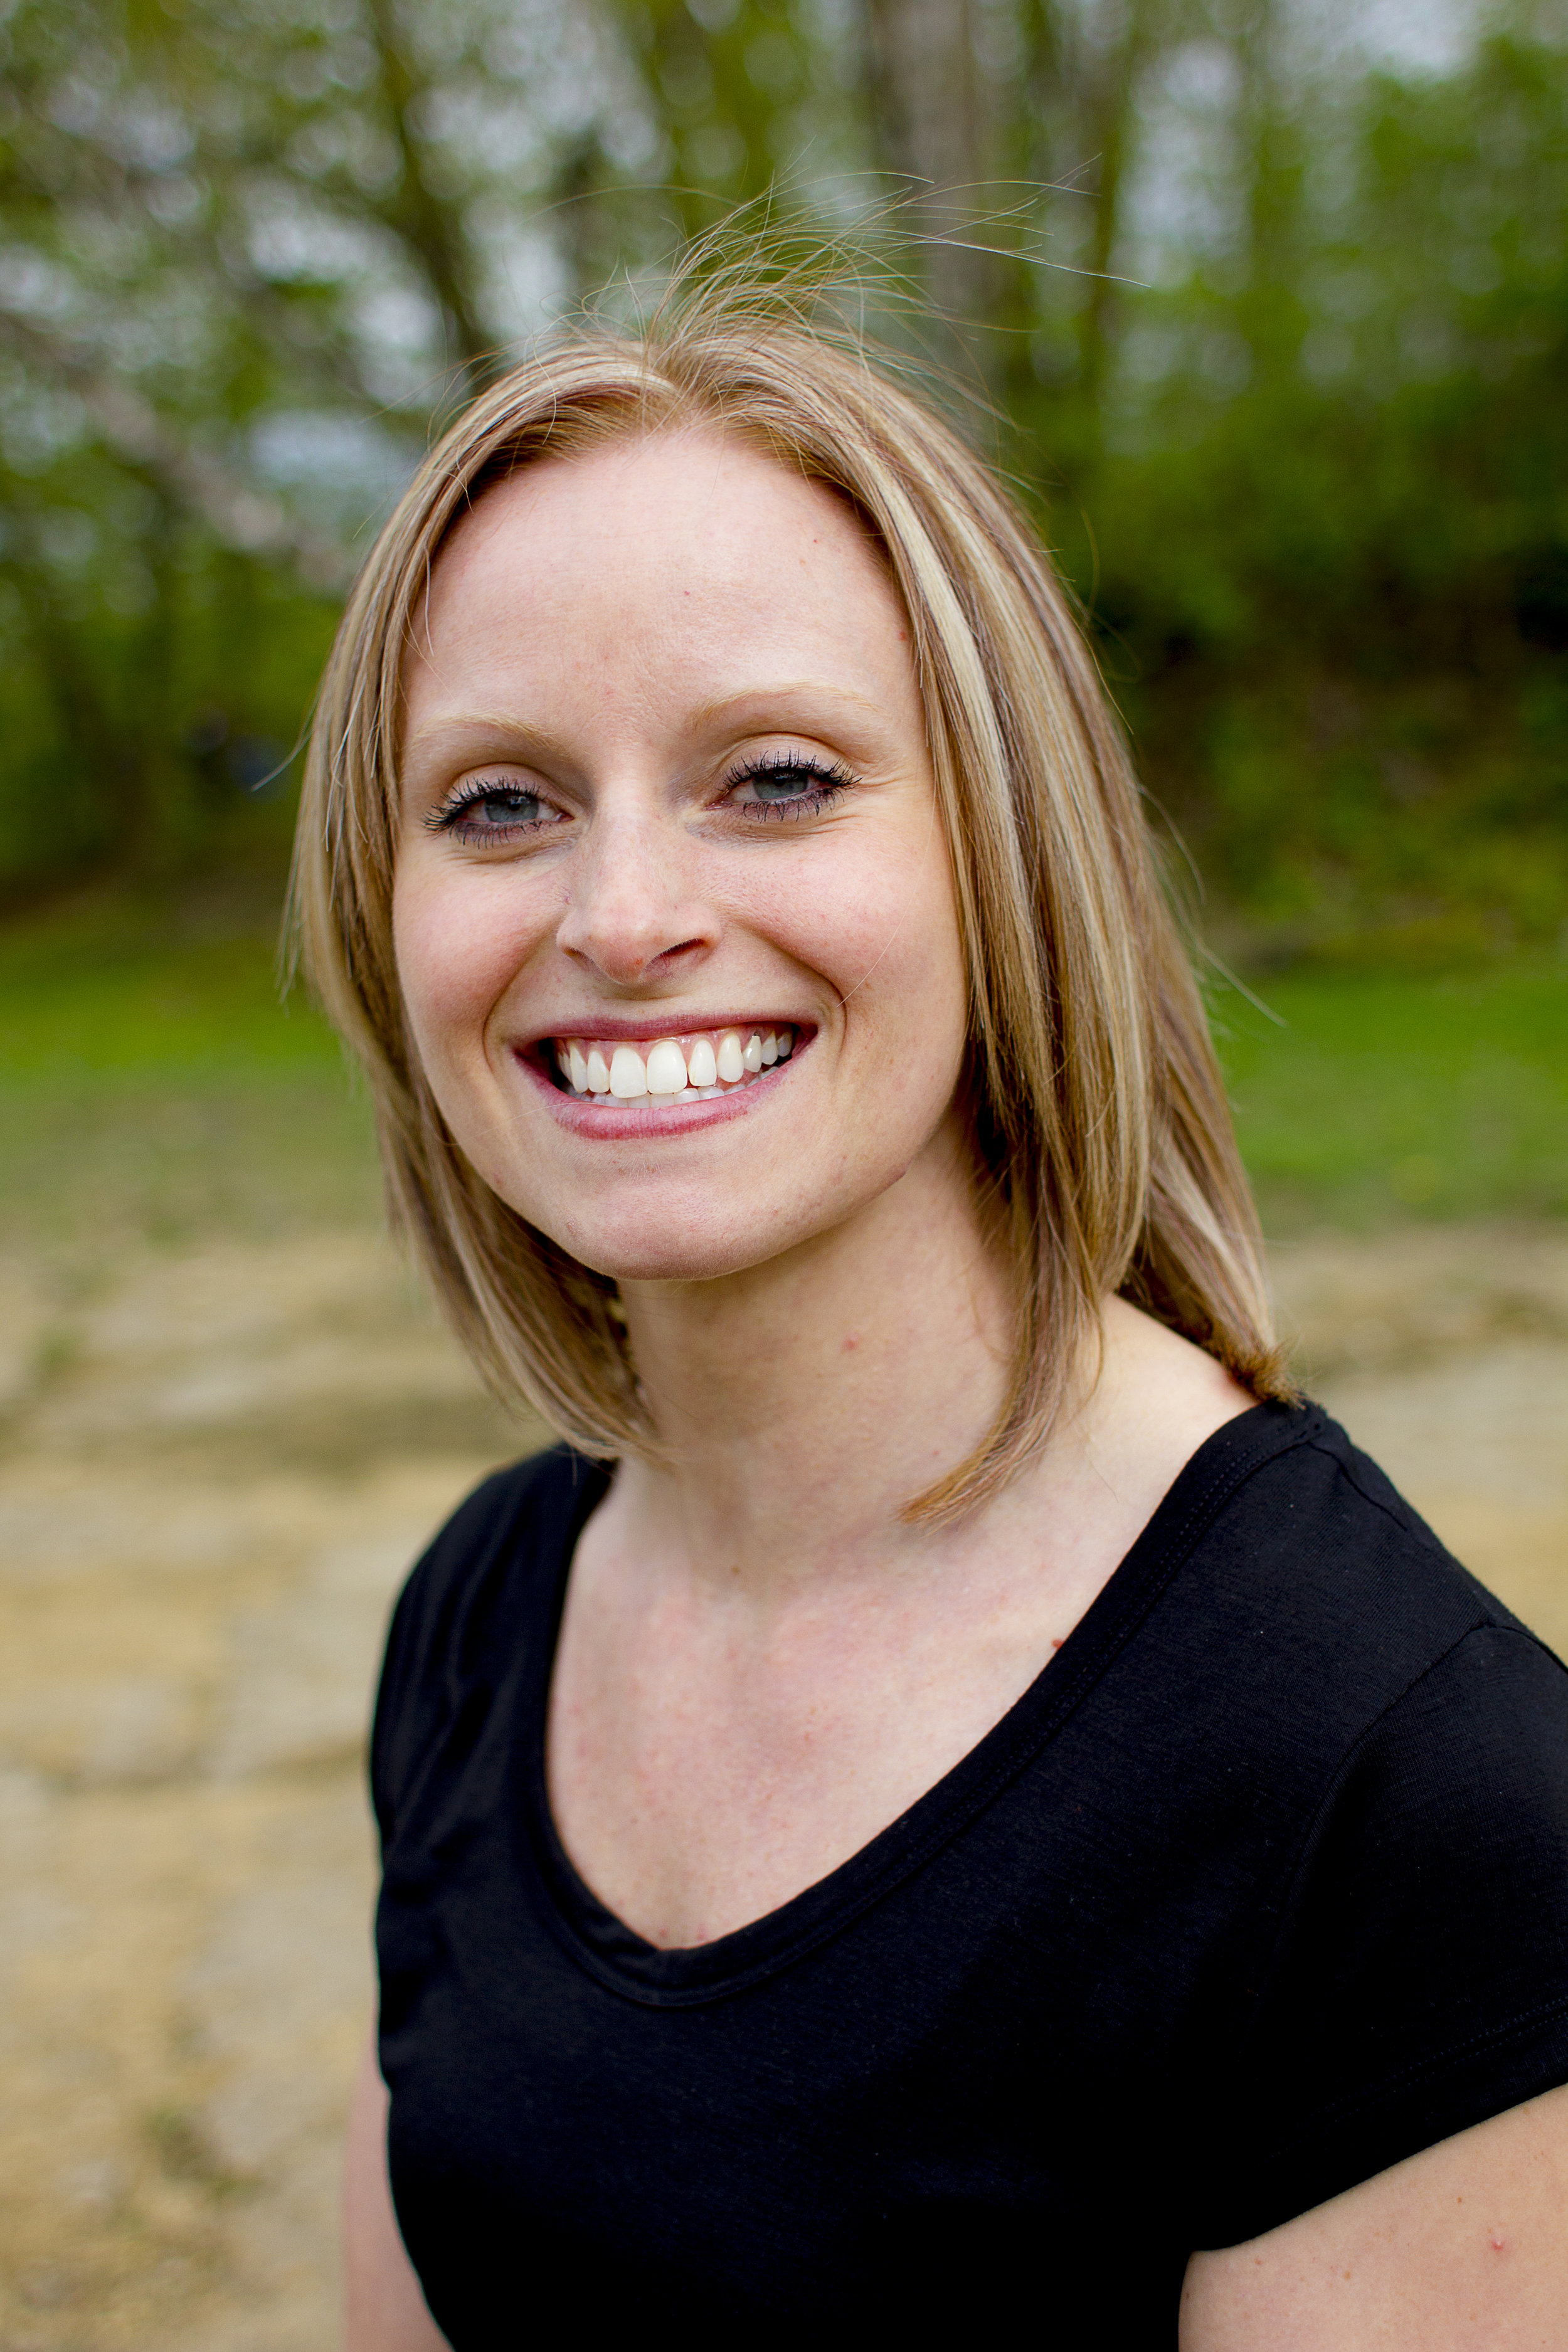 """Amanda Sirek, ACE CPT  At ETHOS: Health & Wellness Coach  Education: BS Wellness & Fitness Management, Minor in Business Admin, ACE Personal Trainer, Pending National Board Certified Wellness Coach through the Mayo Wellness Coach Graduate Program  Fitness Background: Competitive Bodybuilding (bikini division).  Personal Interests: Widening her mindset and wealth of knowledge through reading & personal study/development, spending time with her husband and two boys  Amanda's """"Why"""": To promote a supportive & empowering environment so we strengthen our mind and live our life with intent.  Quote: """"Begin with the End in Mind."""" Steven Covey; 7 Habits of Highly Effective People."""